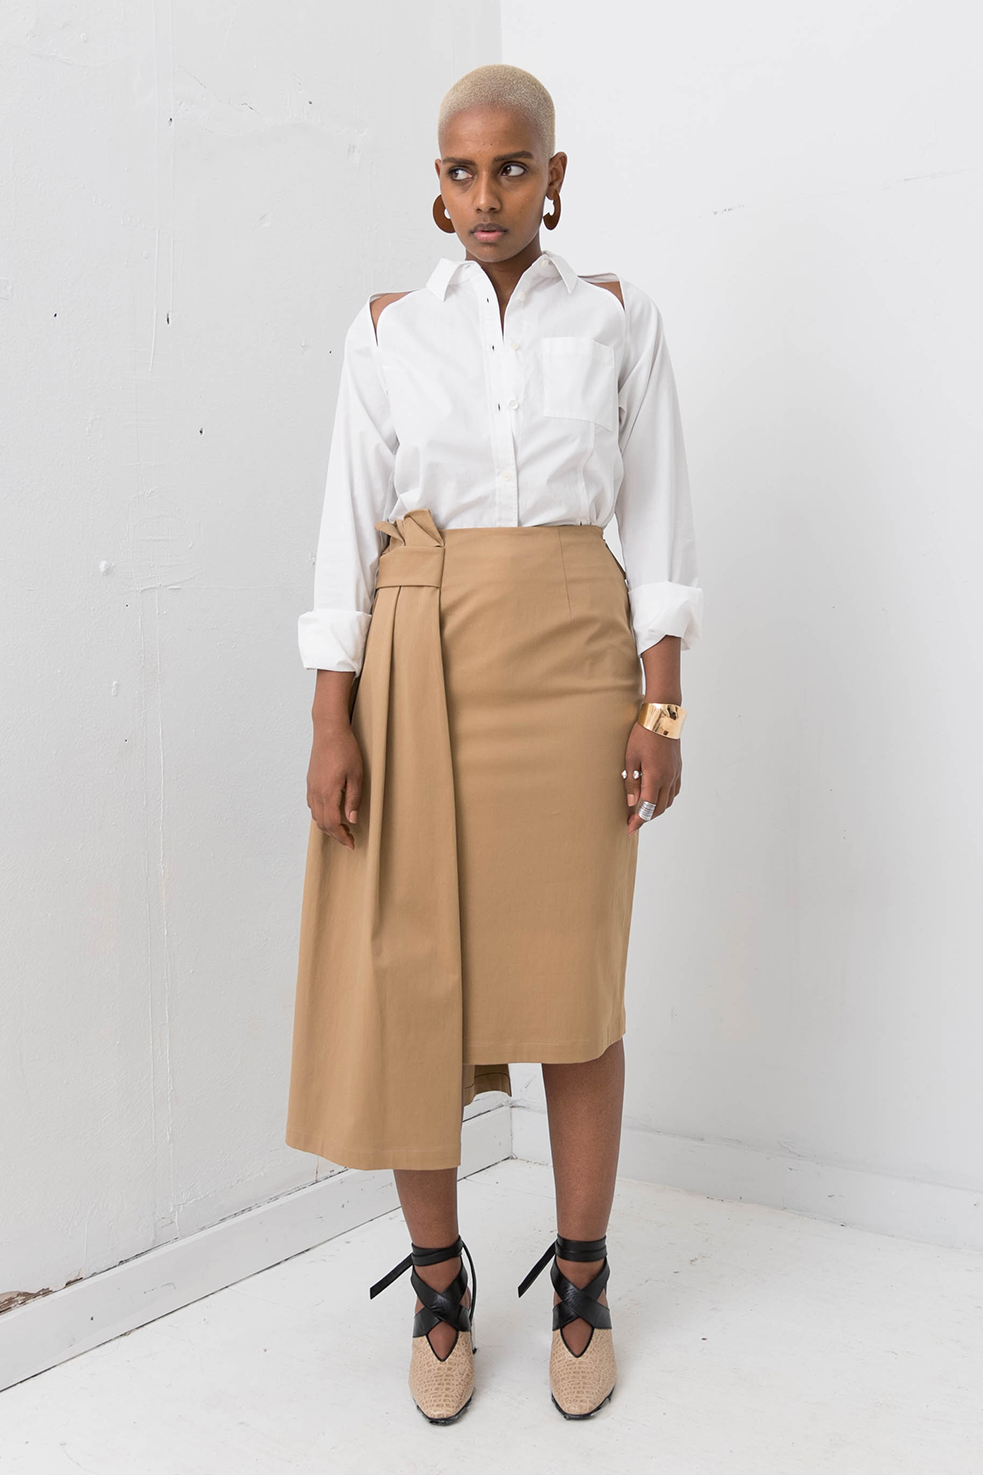 Silvae Therese Skirt